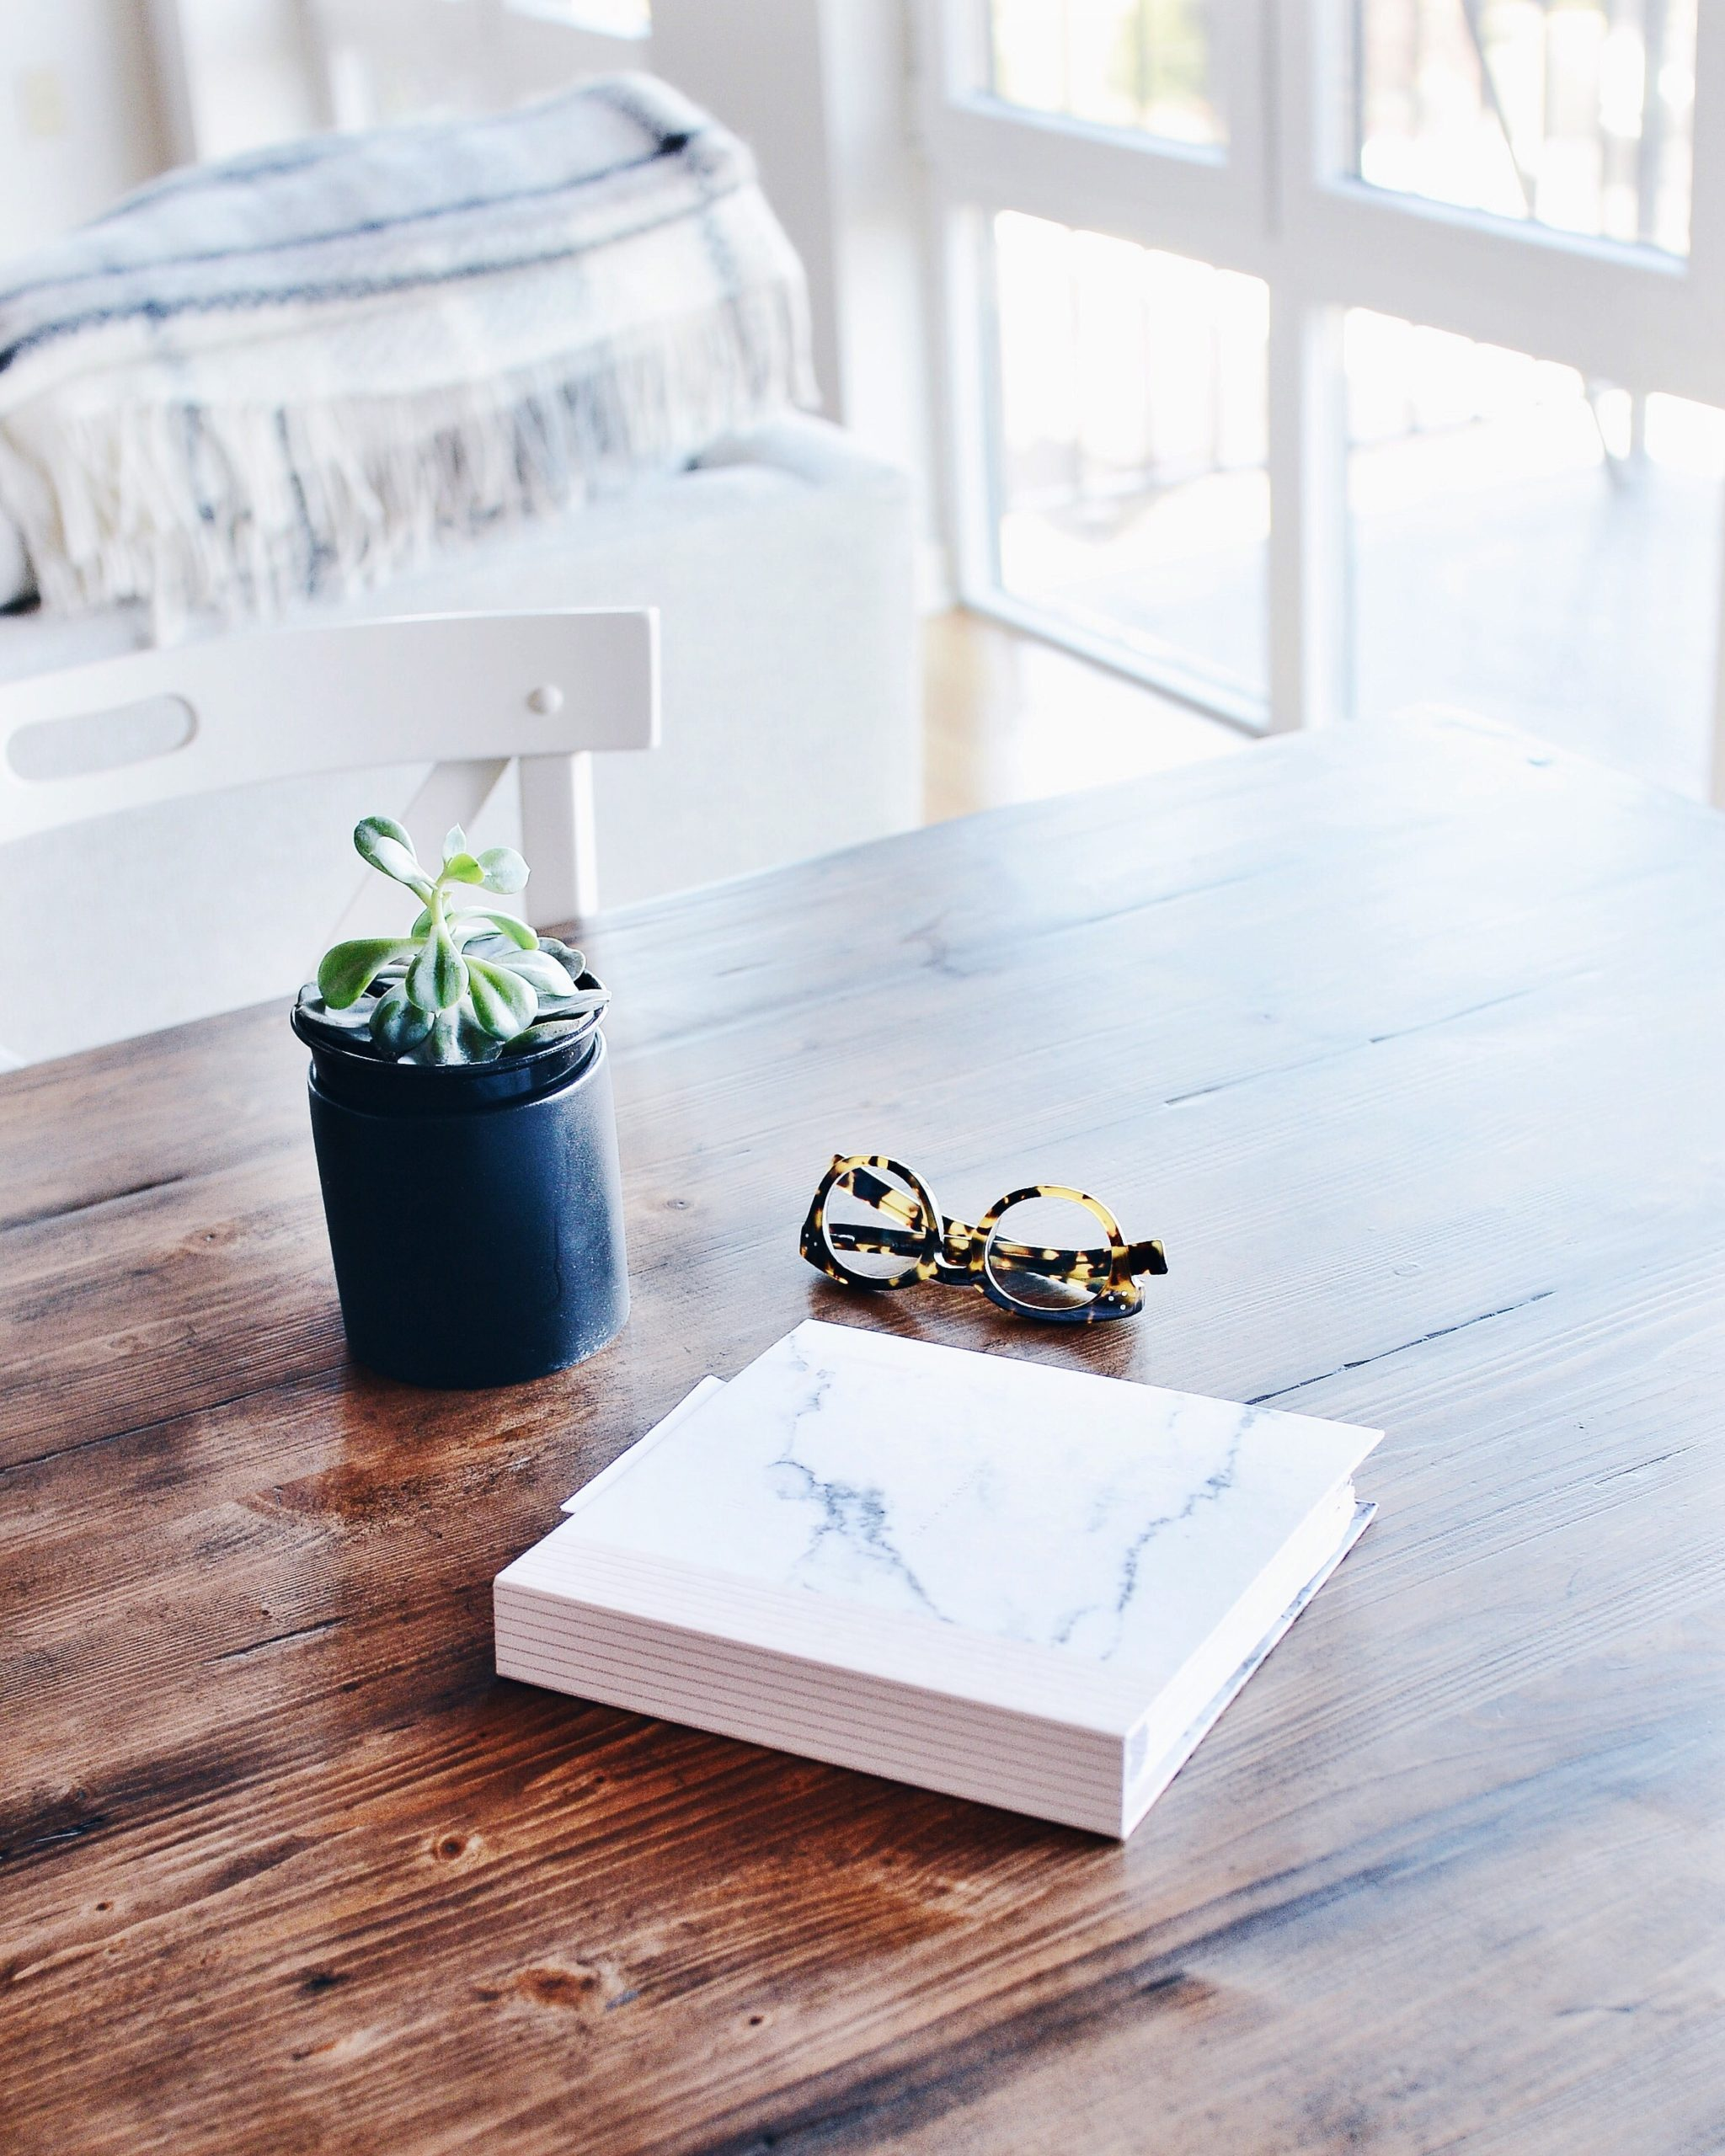 plant, book and glases on kitchen table